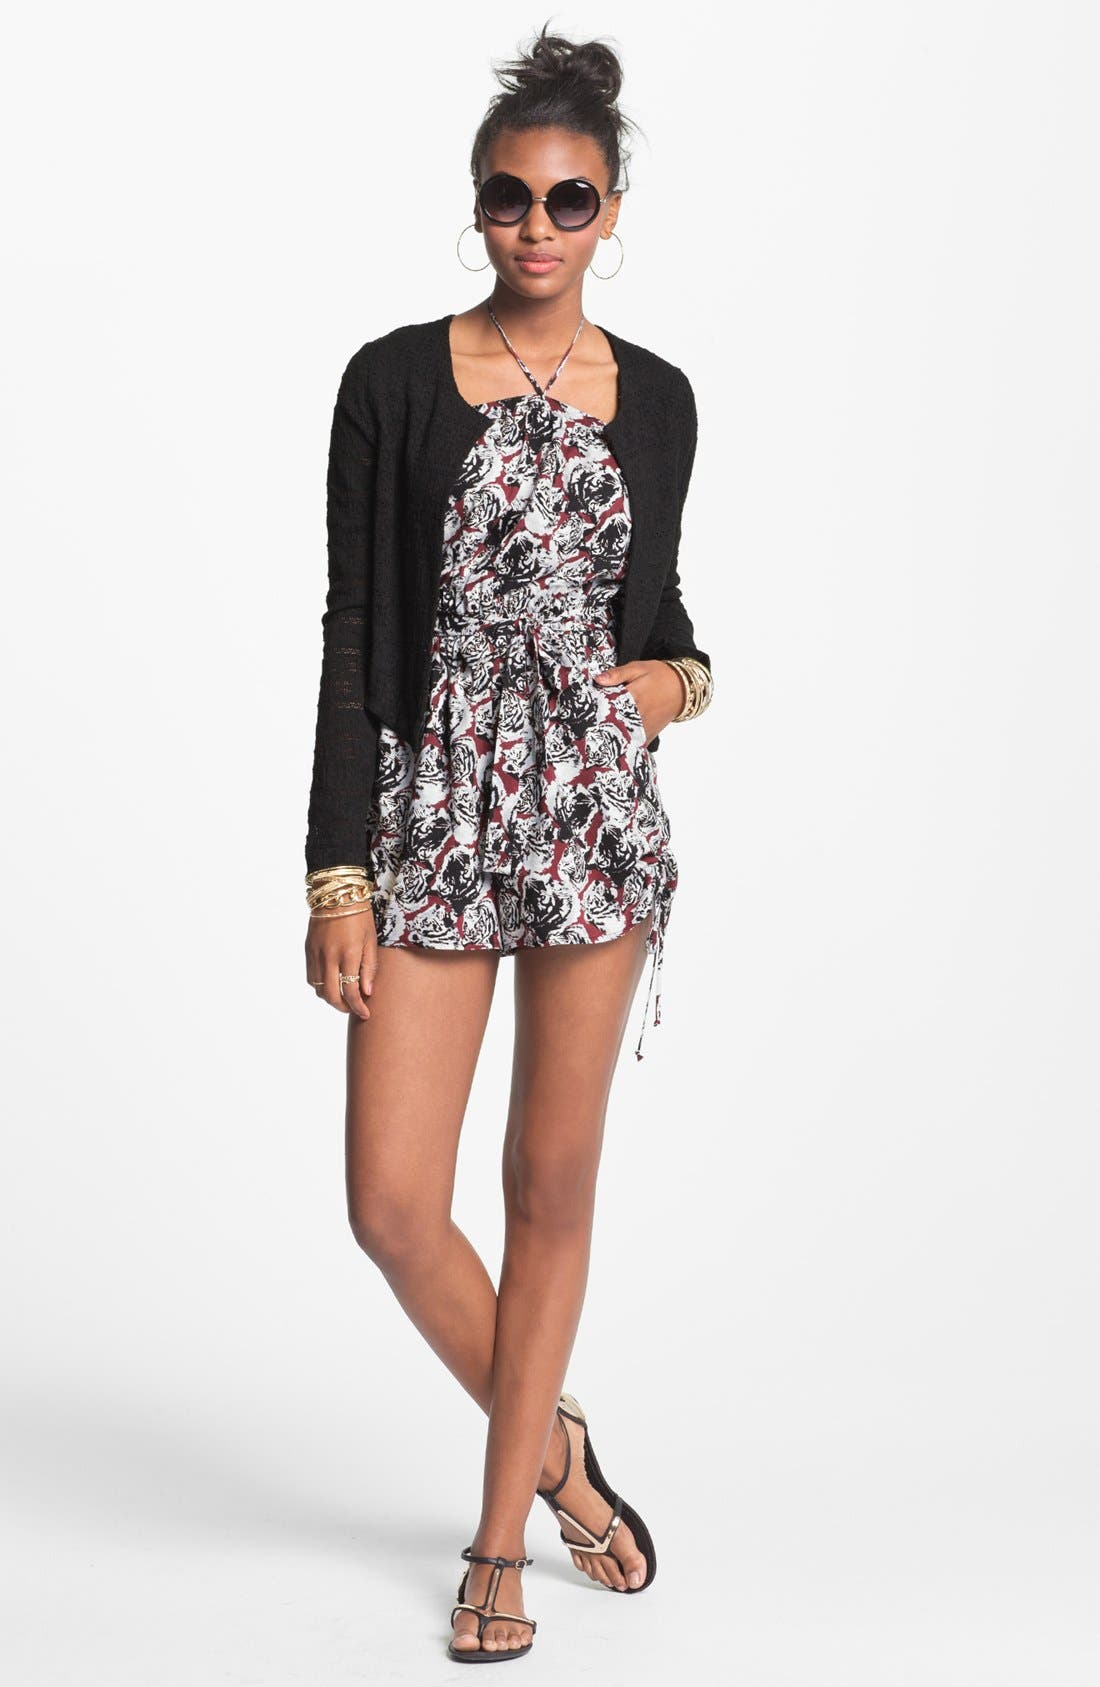 Alternate Image 1 Selected - Fire Ruffle Front Romper & h.i.p. Sheer Lace Blazer